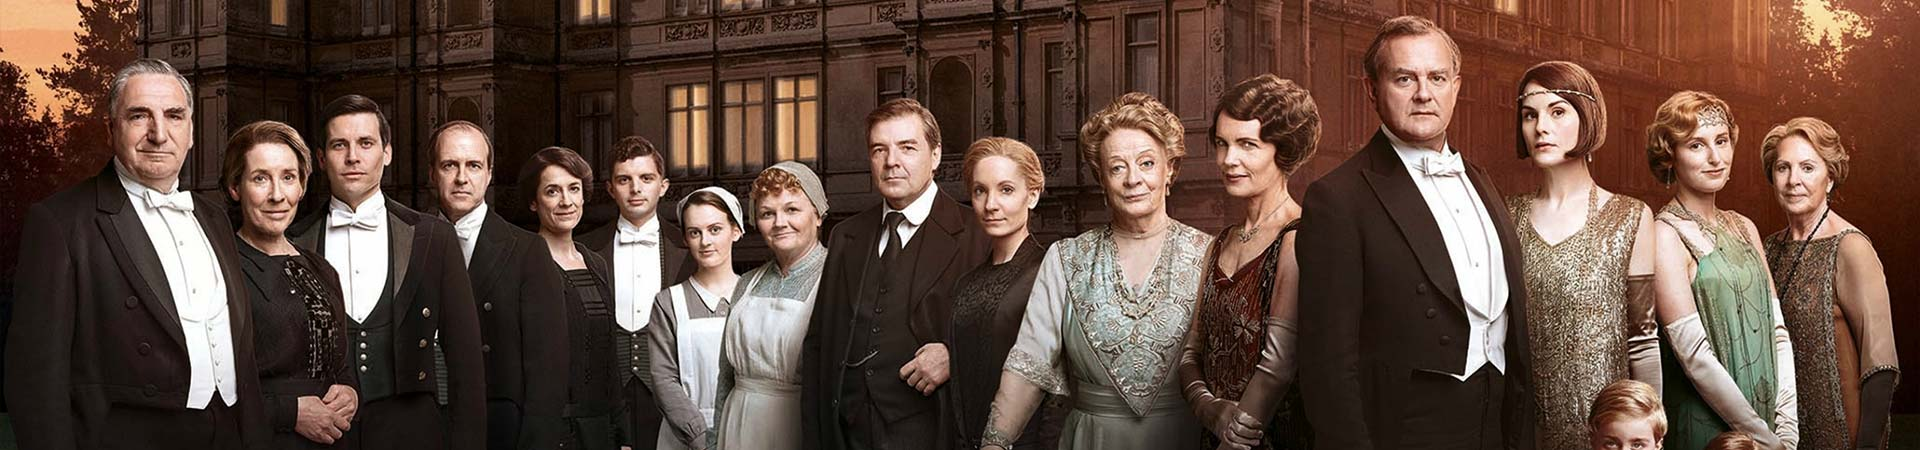 MainSlider-DowntonAbbey